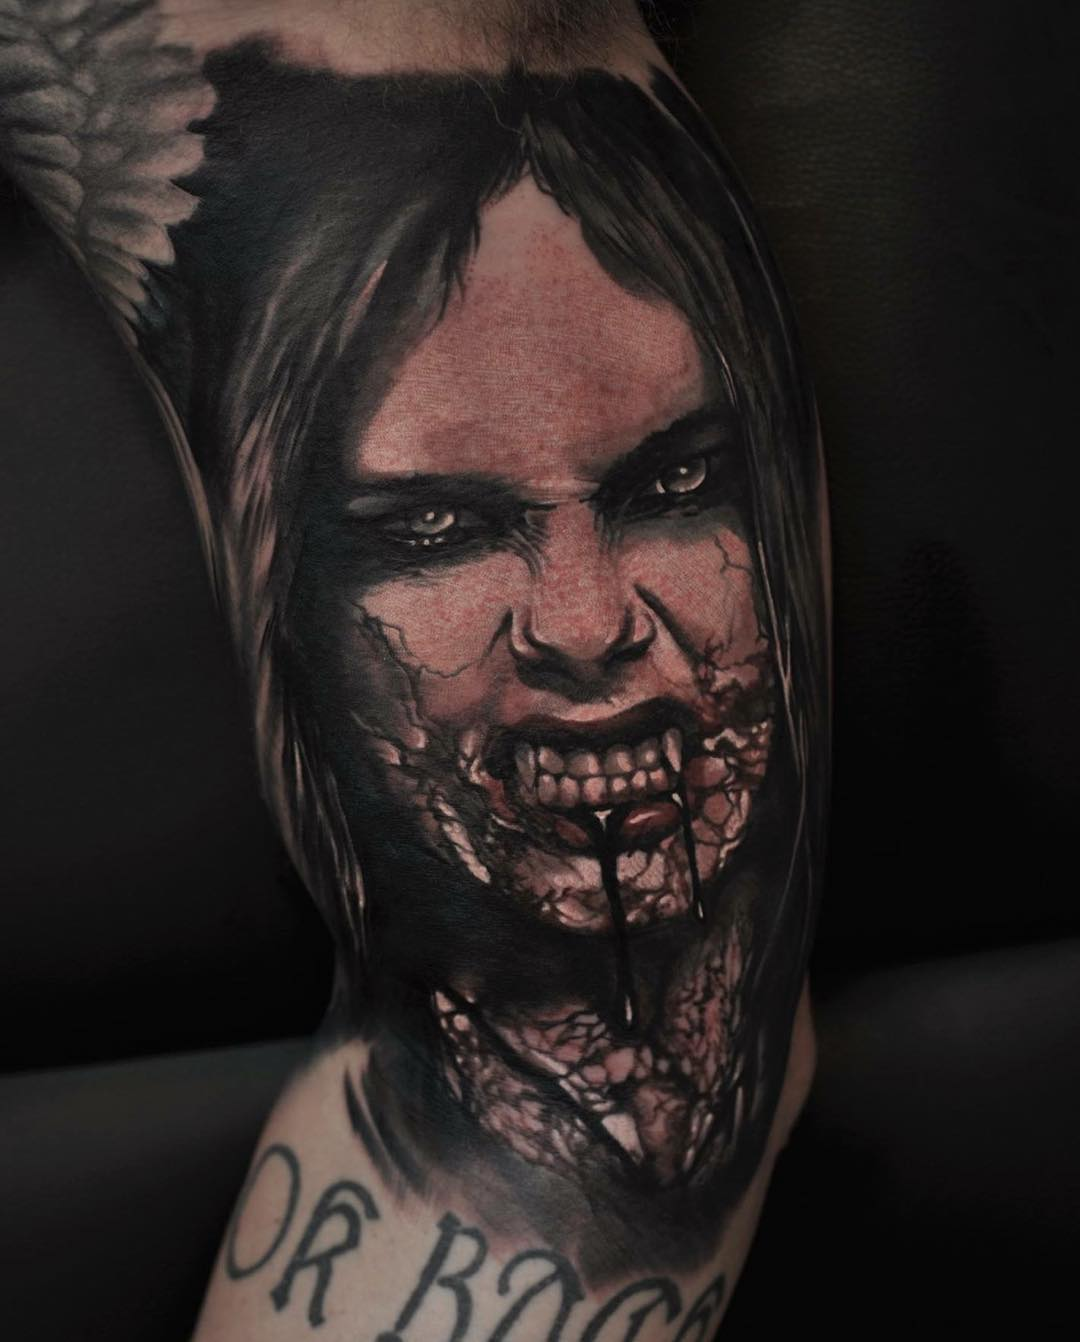 Zombie Girl Face With Dipping Blood Tattoo Tattoo Geek Ideas For Best Tattoos